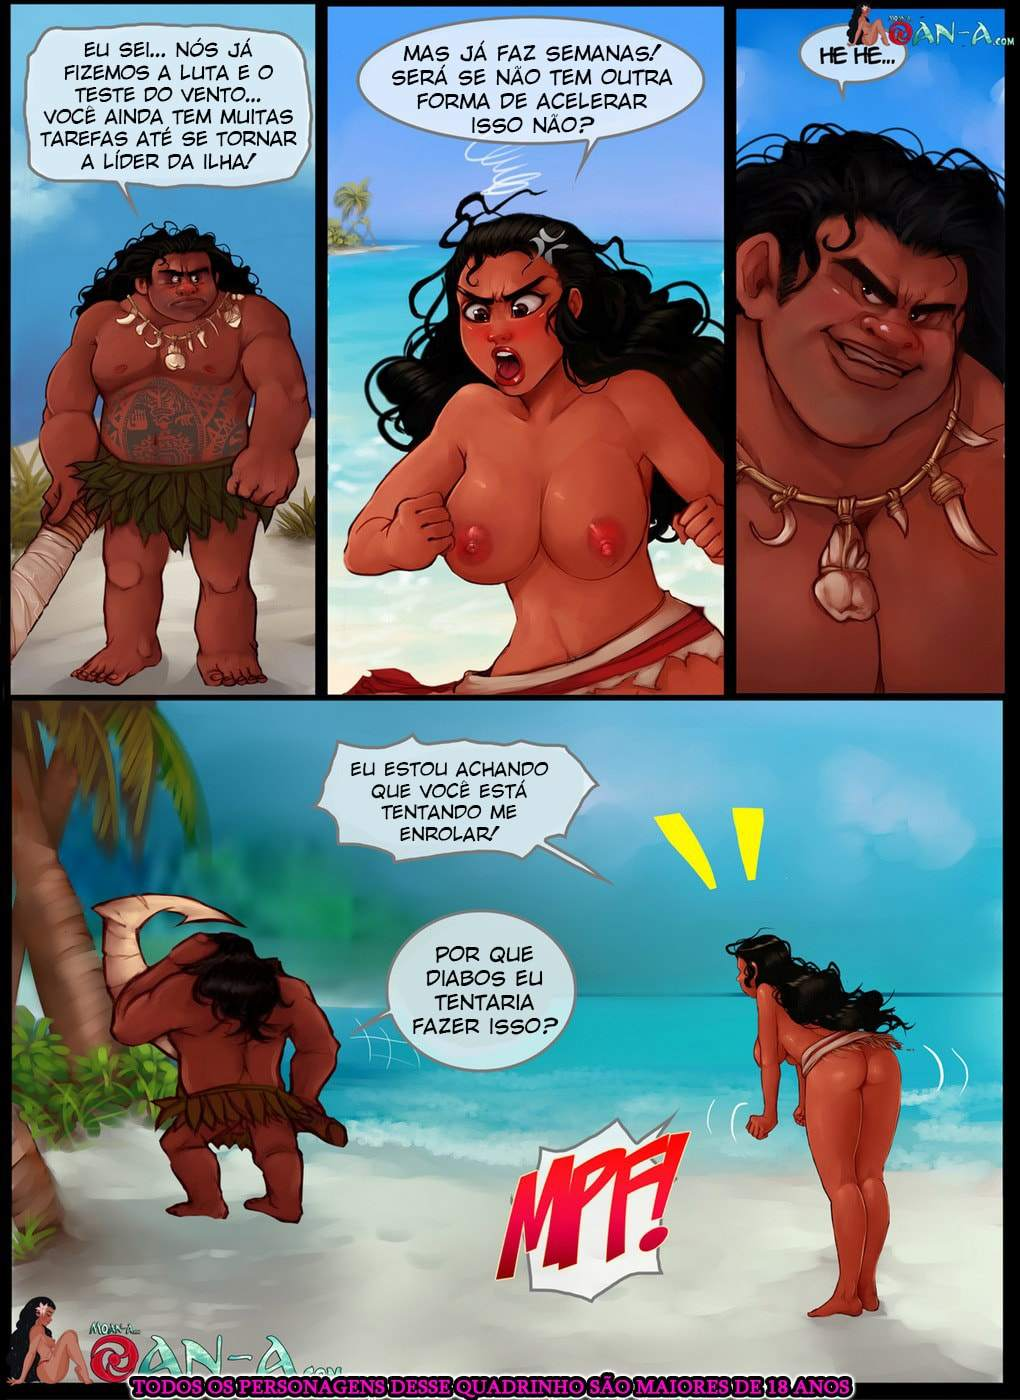 Moan part 2 Chesare Disney The Hentai 06 - hentai, comics-hq